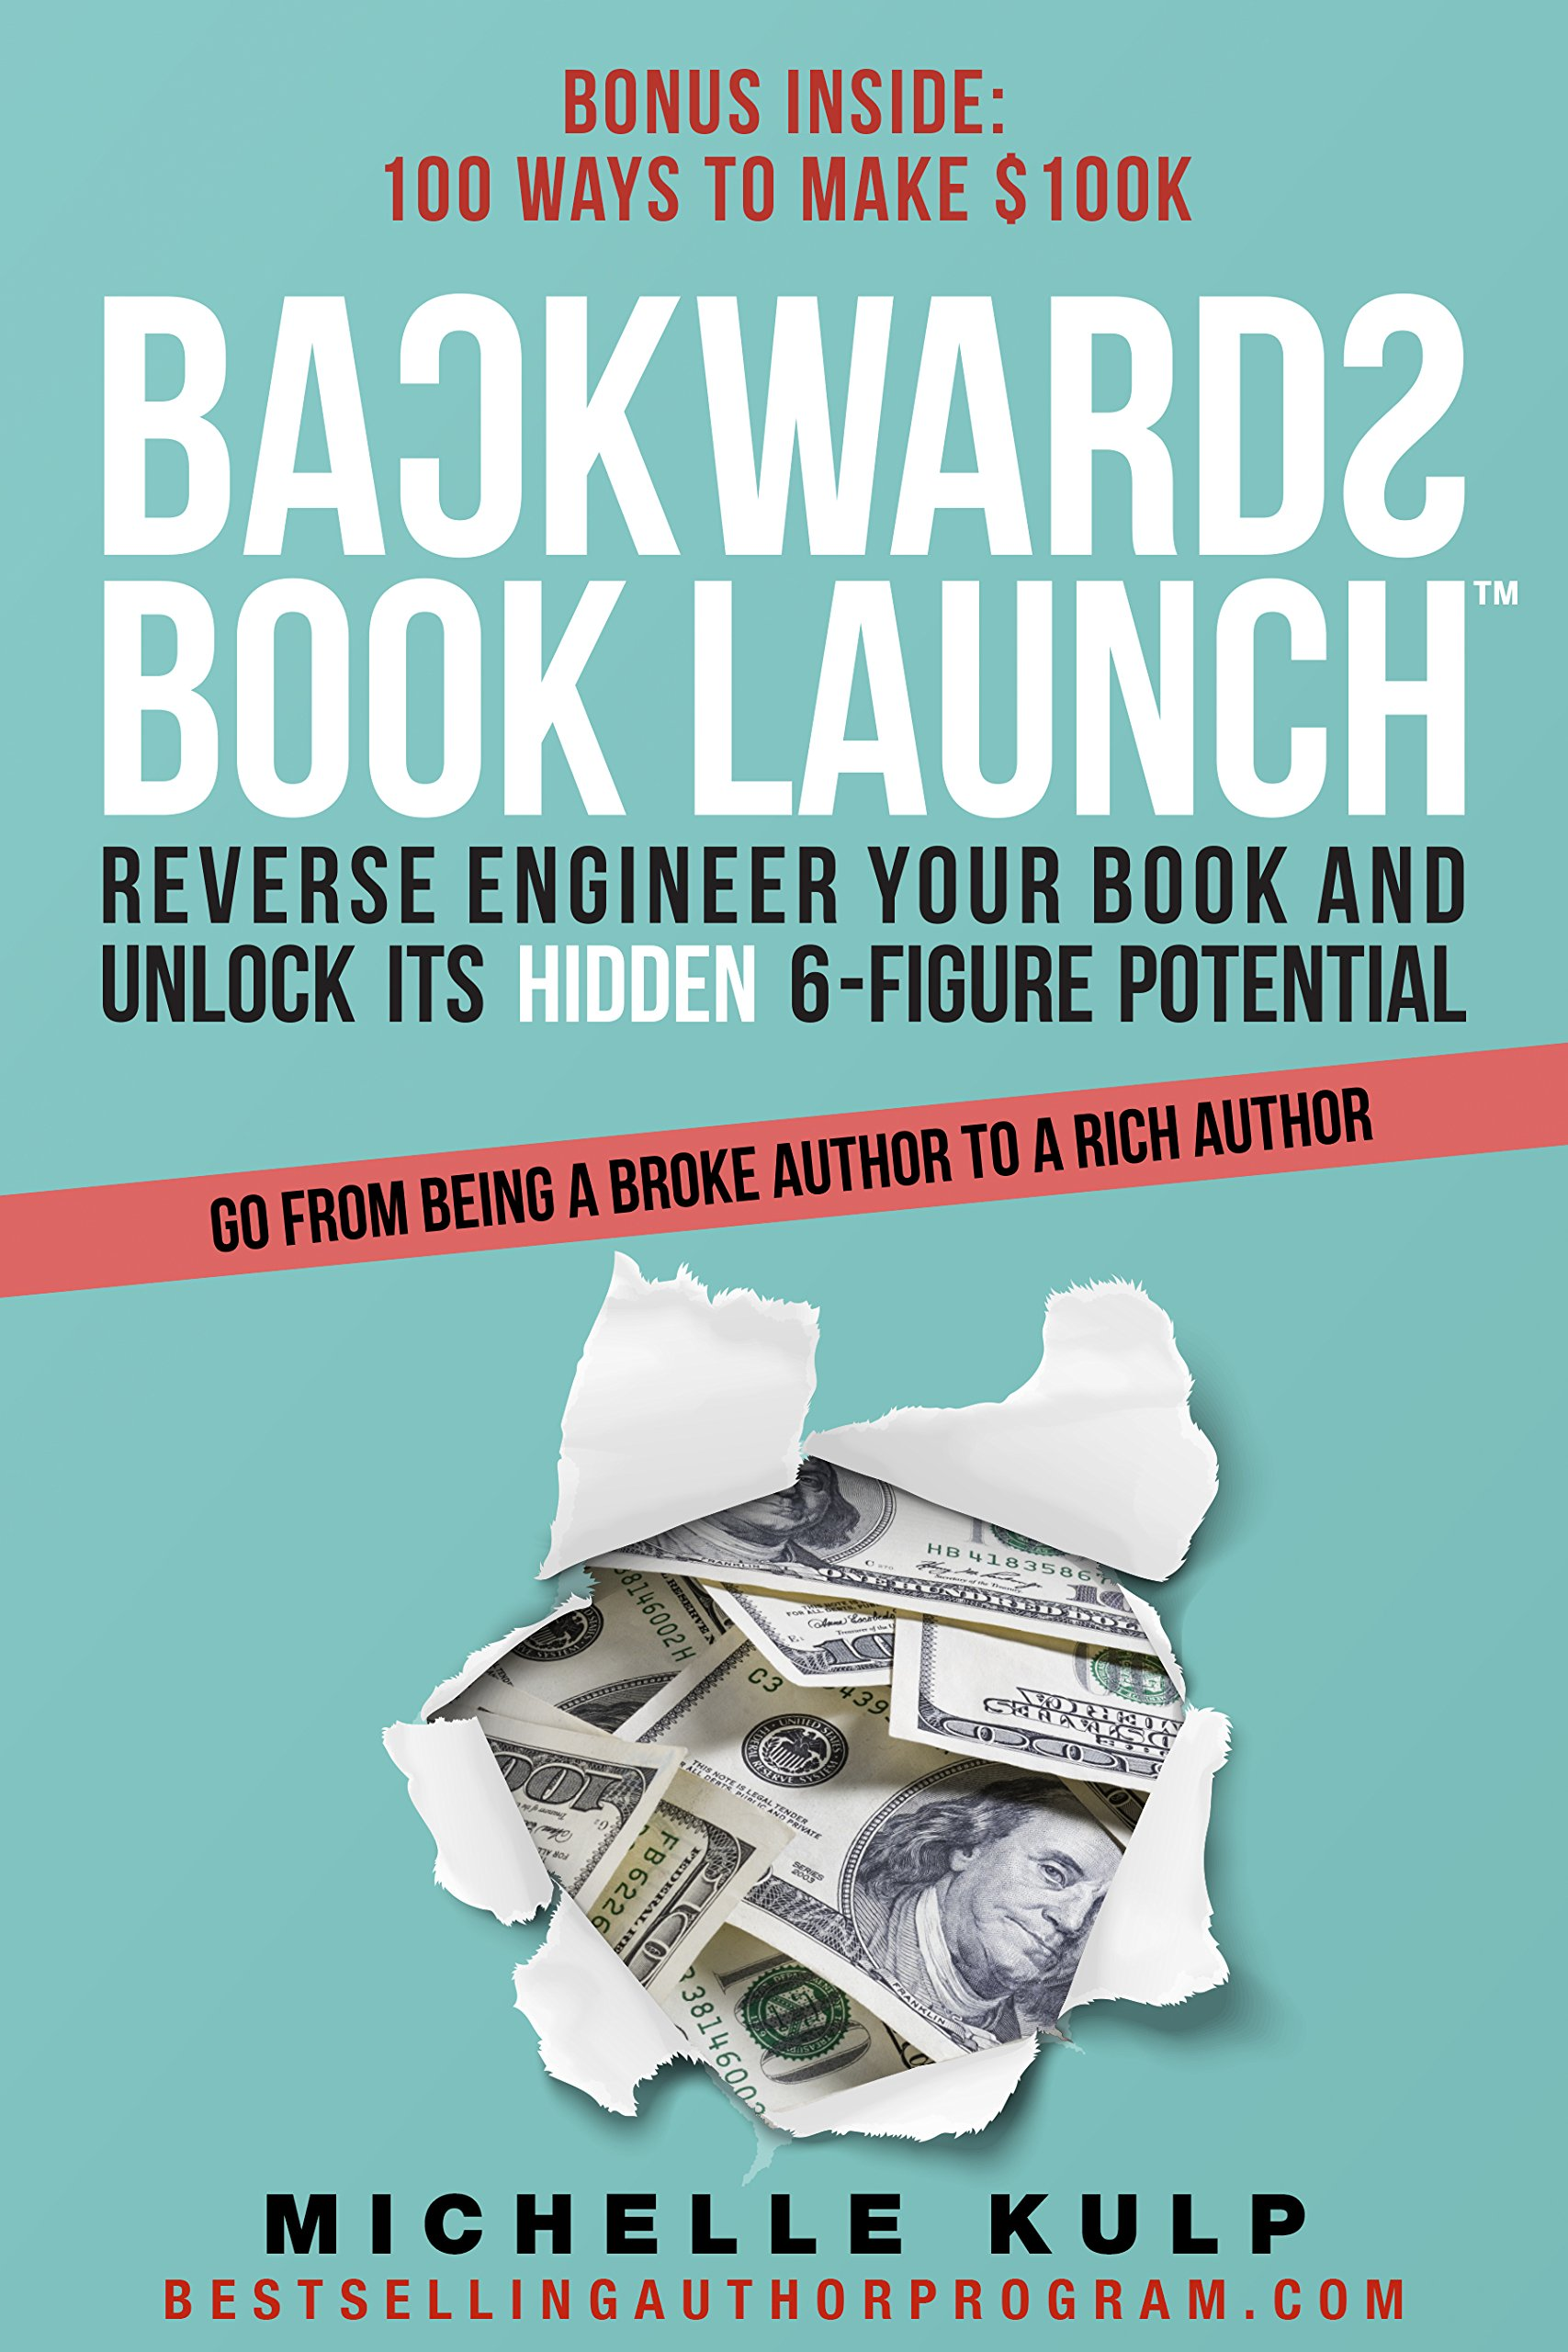 Backwards Book Launch: Reverse Engineer Your Book and Unlock Its Hidden 6-Figure Potential, Go From Being a Broke Author to a Rich Author